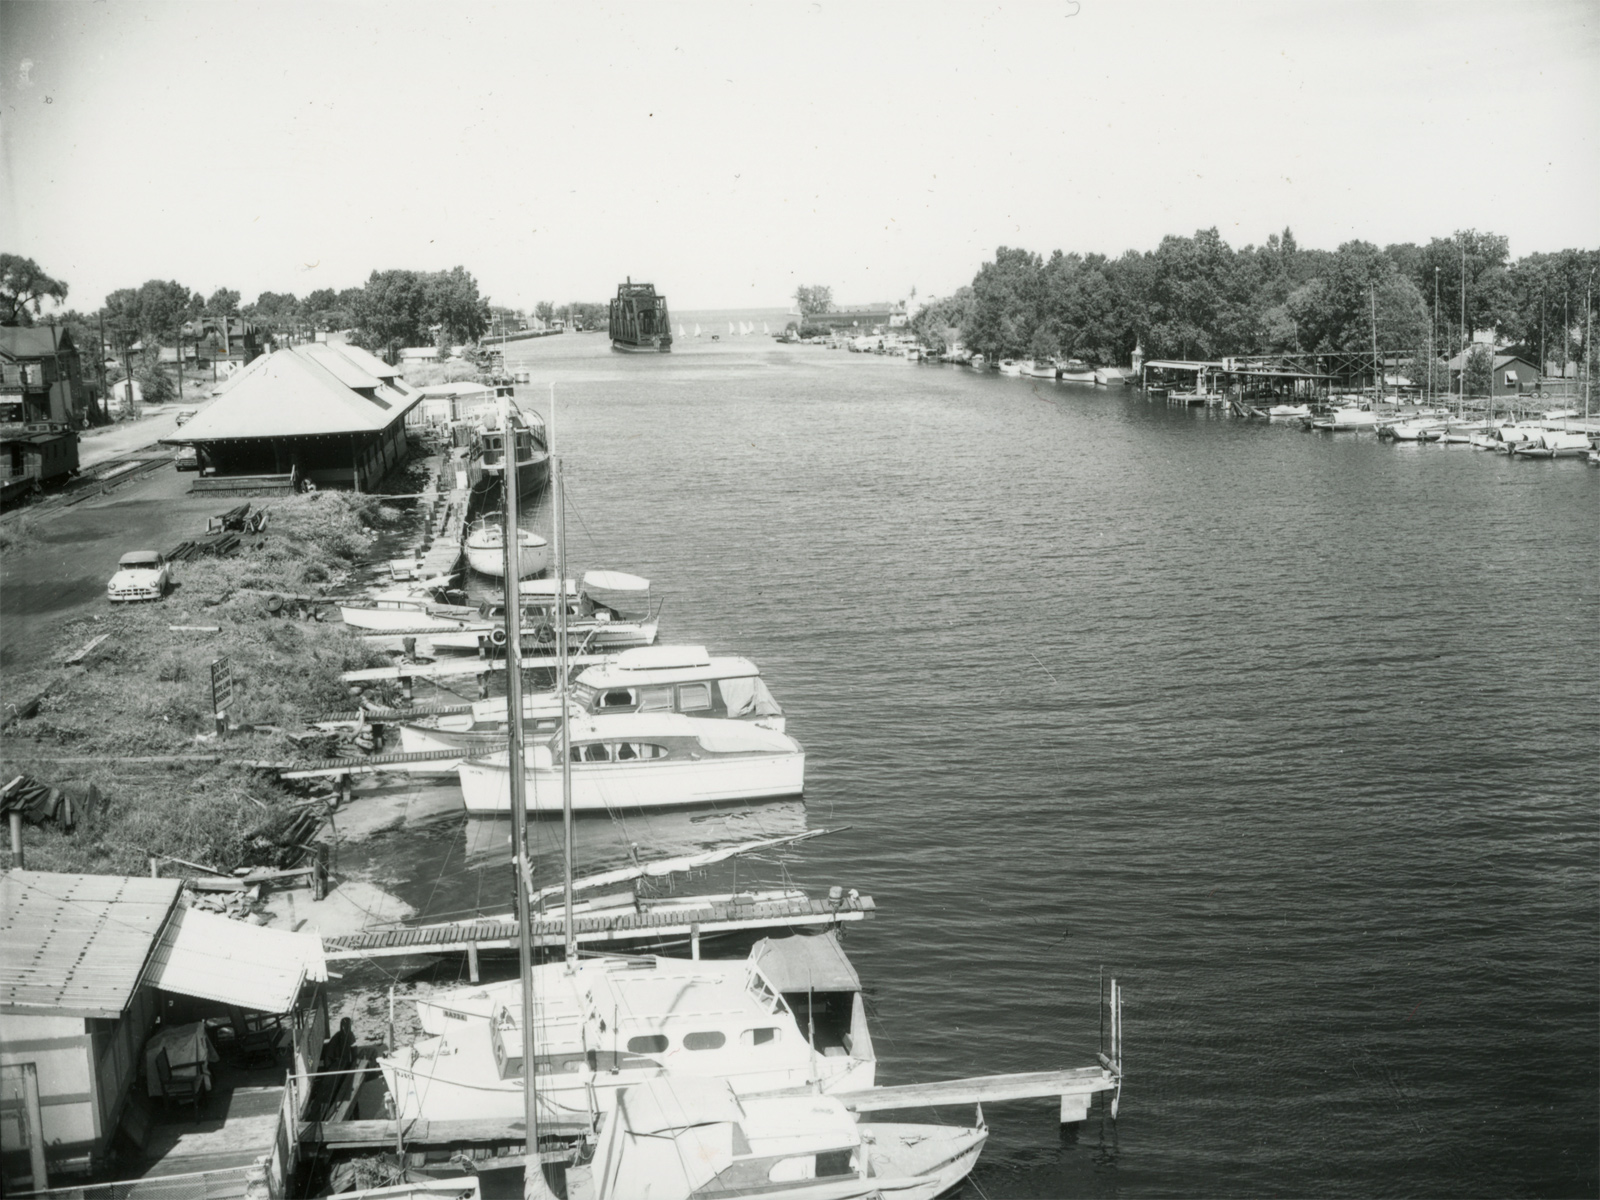 Boats along Genesee River near Lake Ontario 1956 – photo from City of Rochester